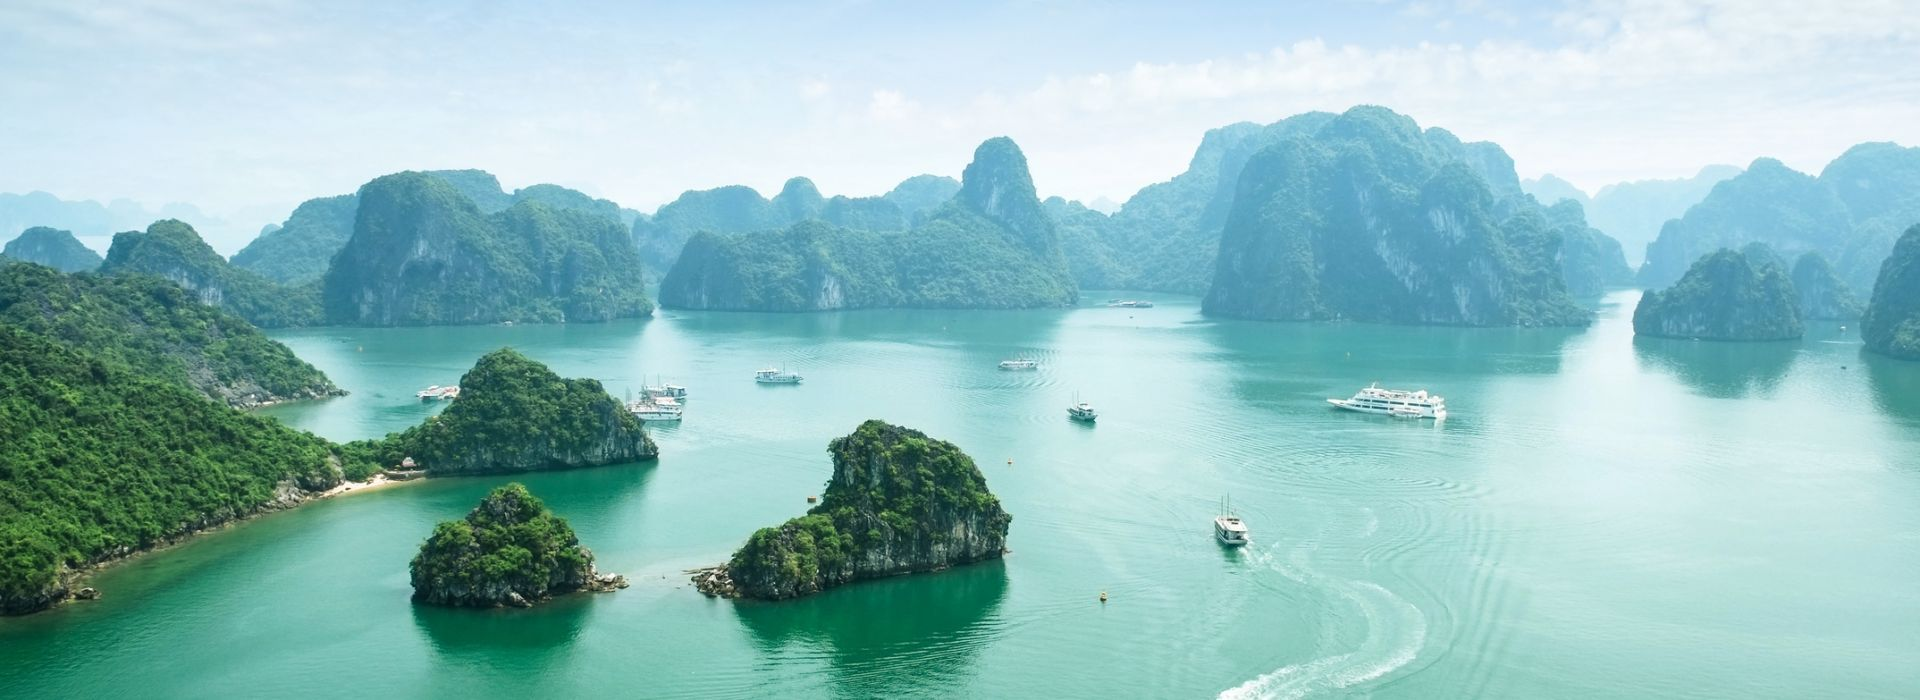 Beach, romance, getaways and relaxation Tours in Ho Chi Minh City